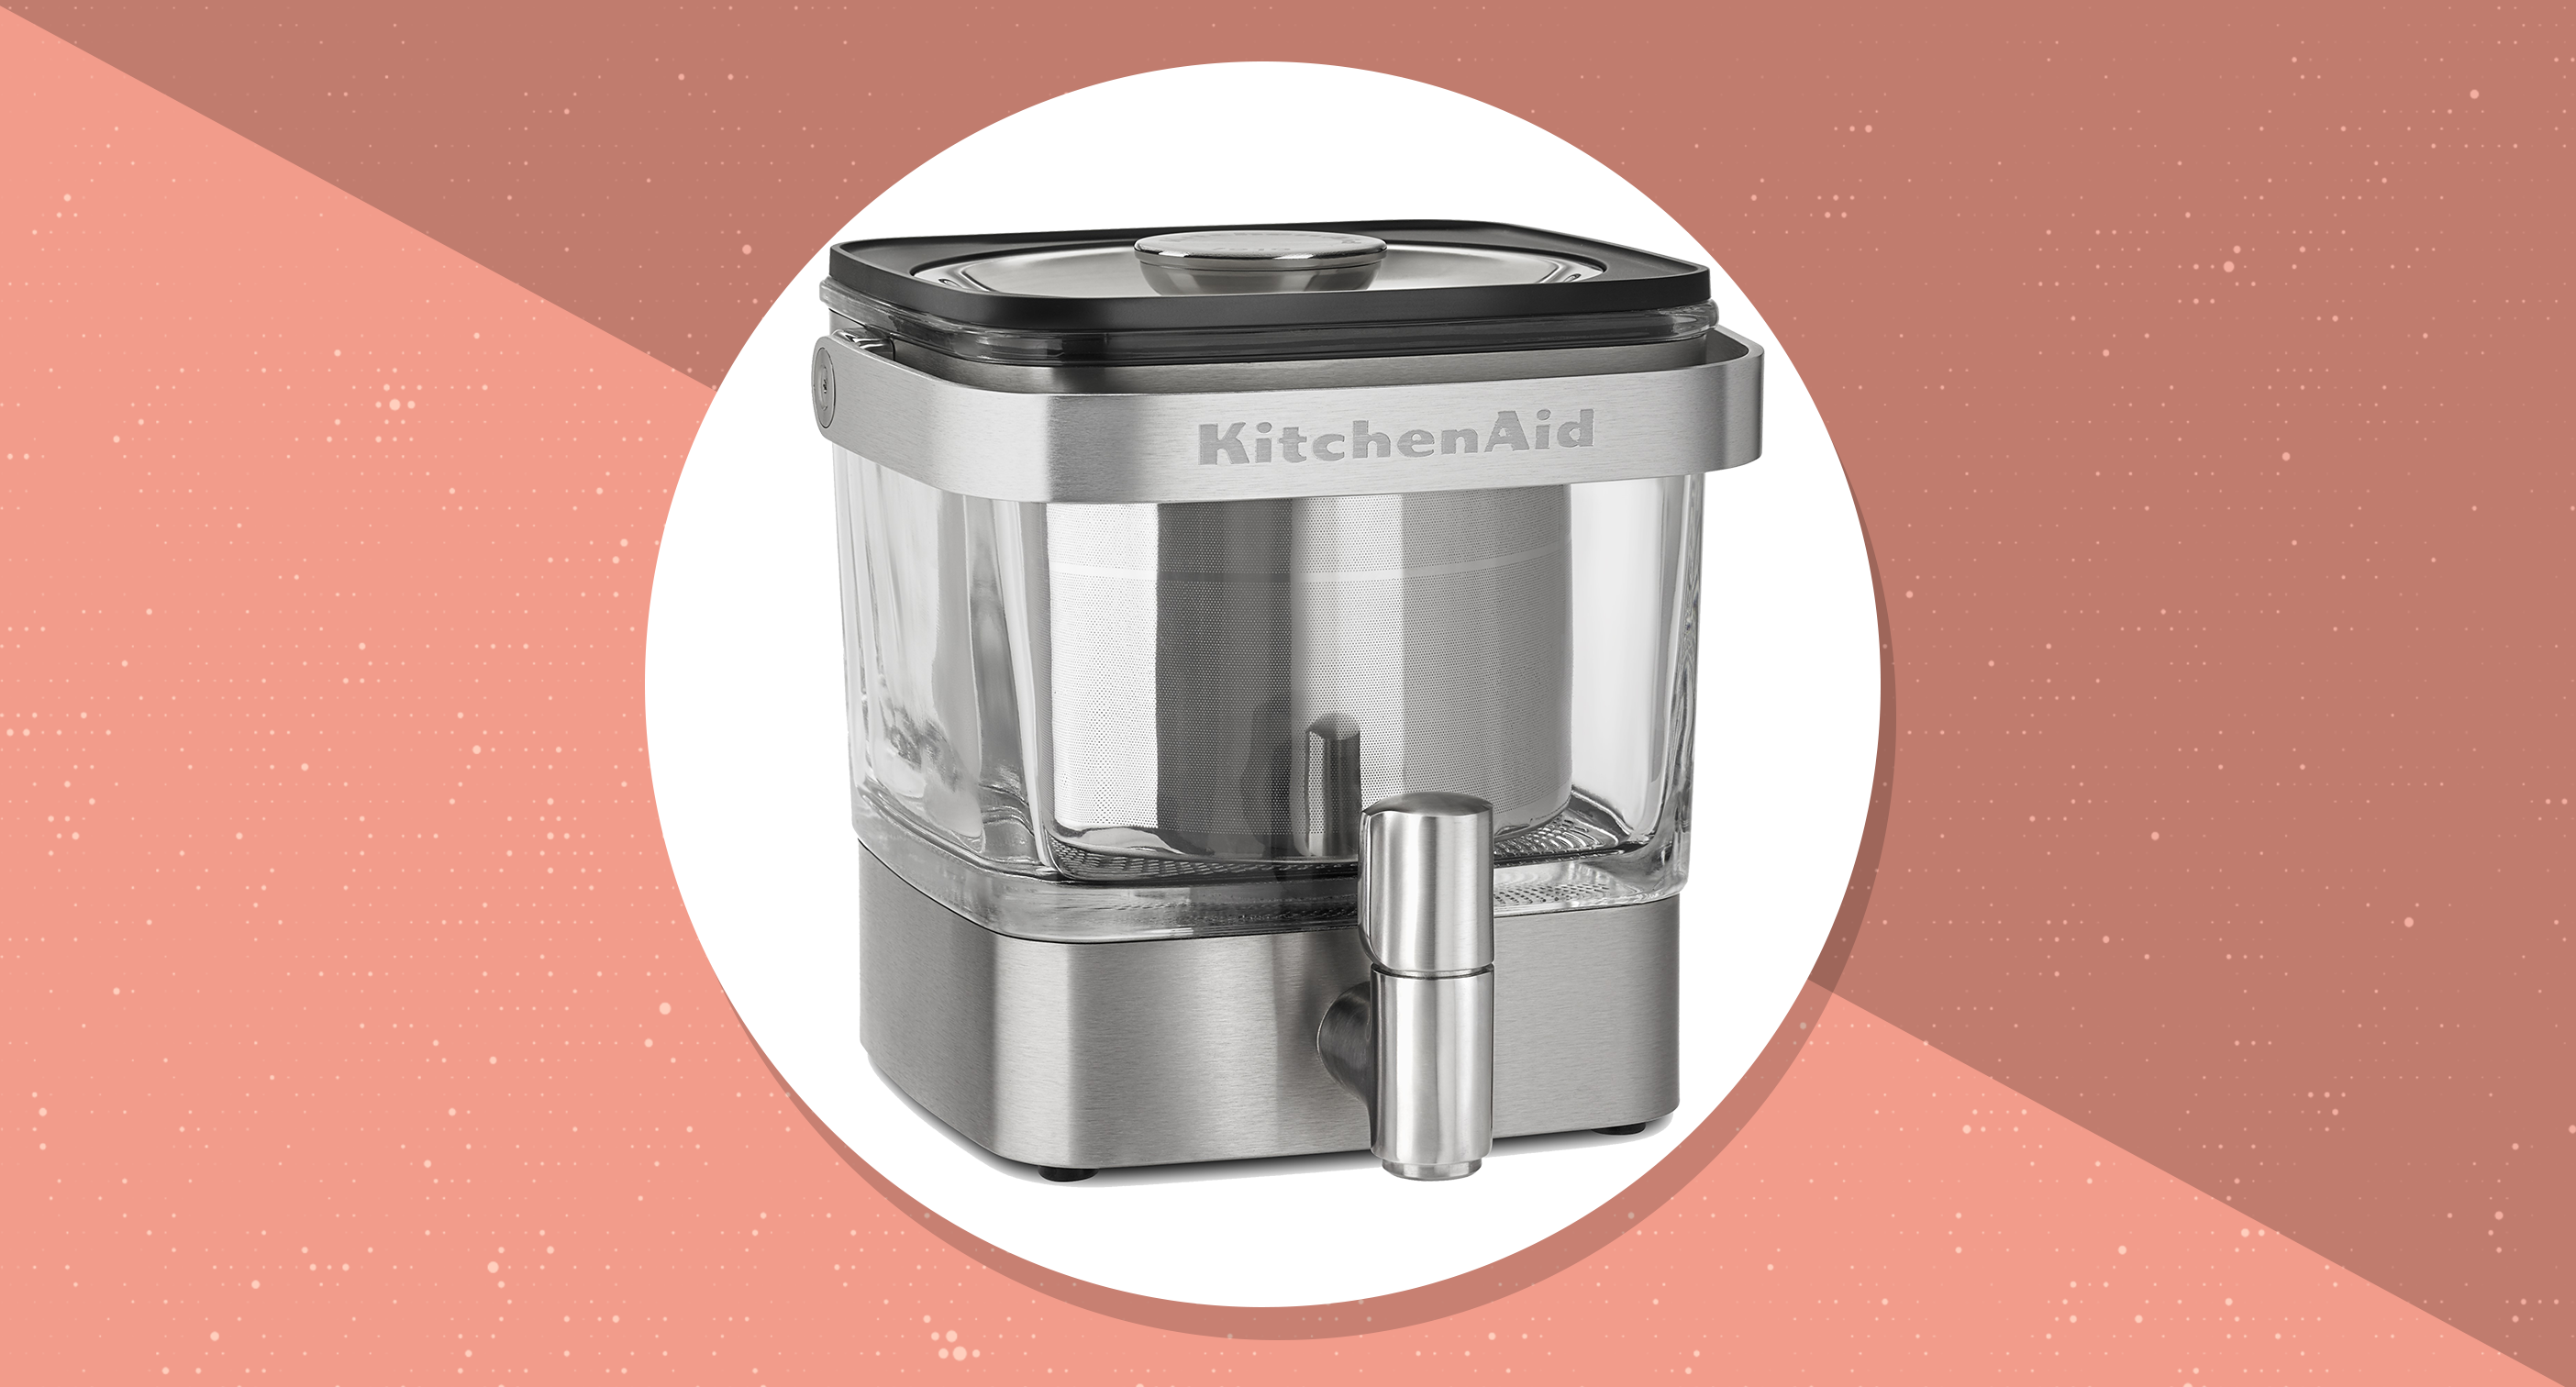 This KitchenAid cold brew coffee maker will transform your mornings and save you a fortune—and it's just $55